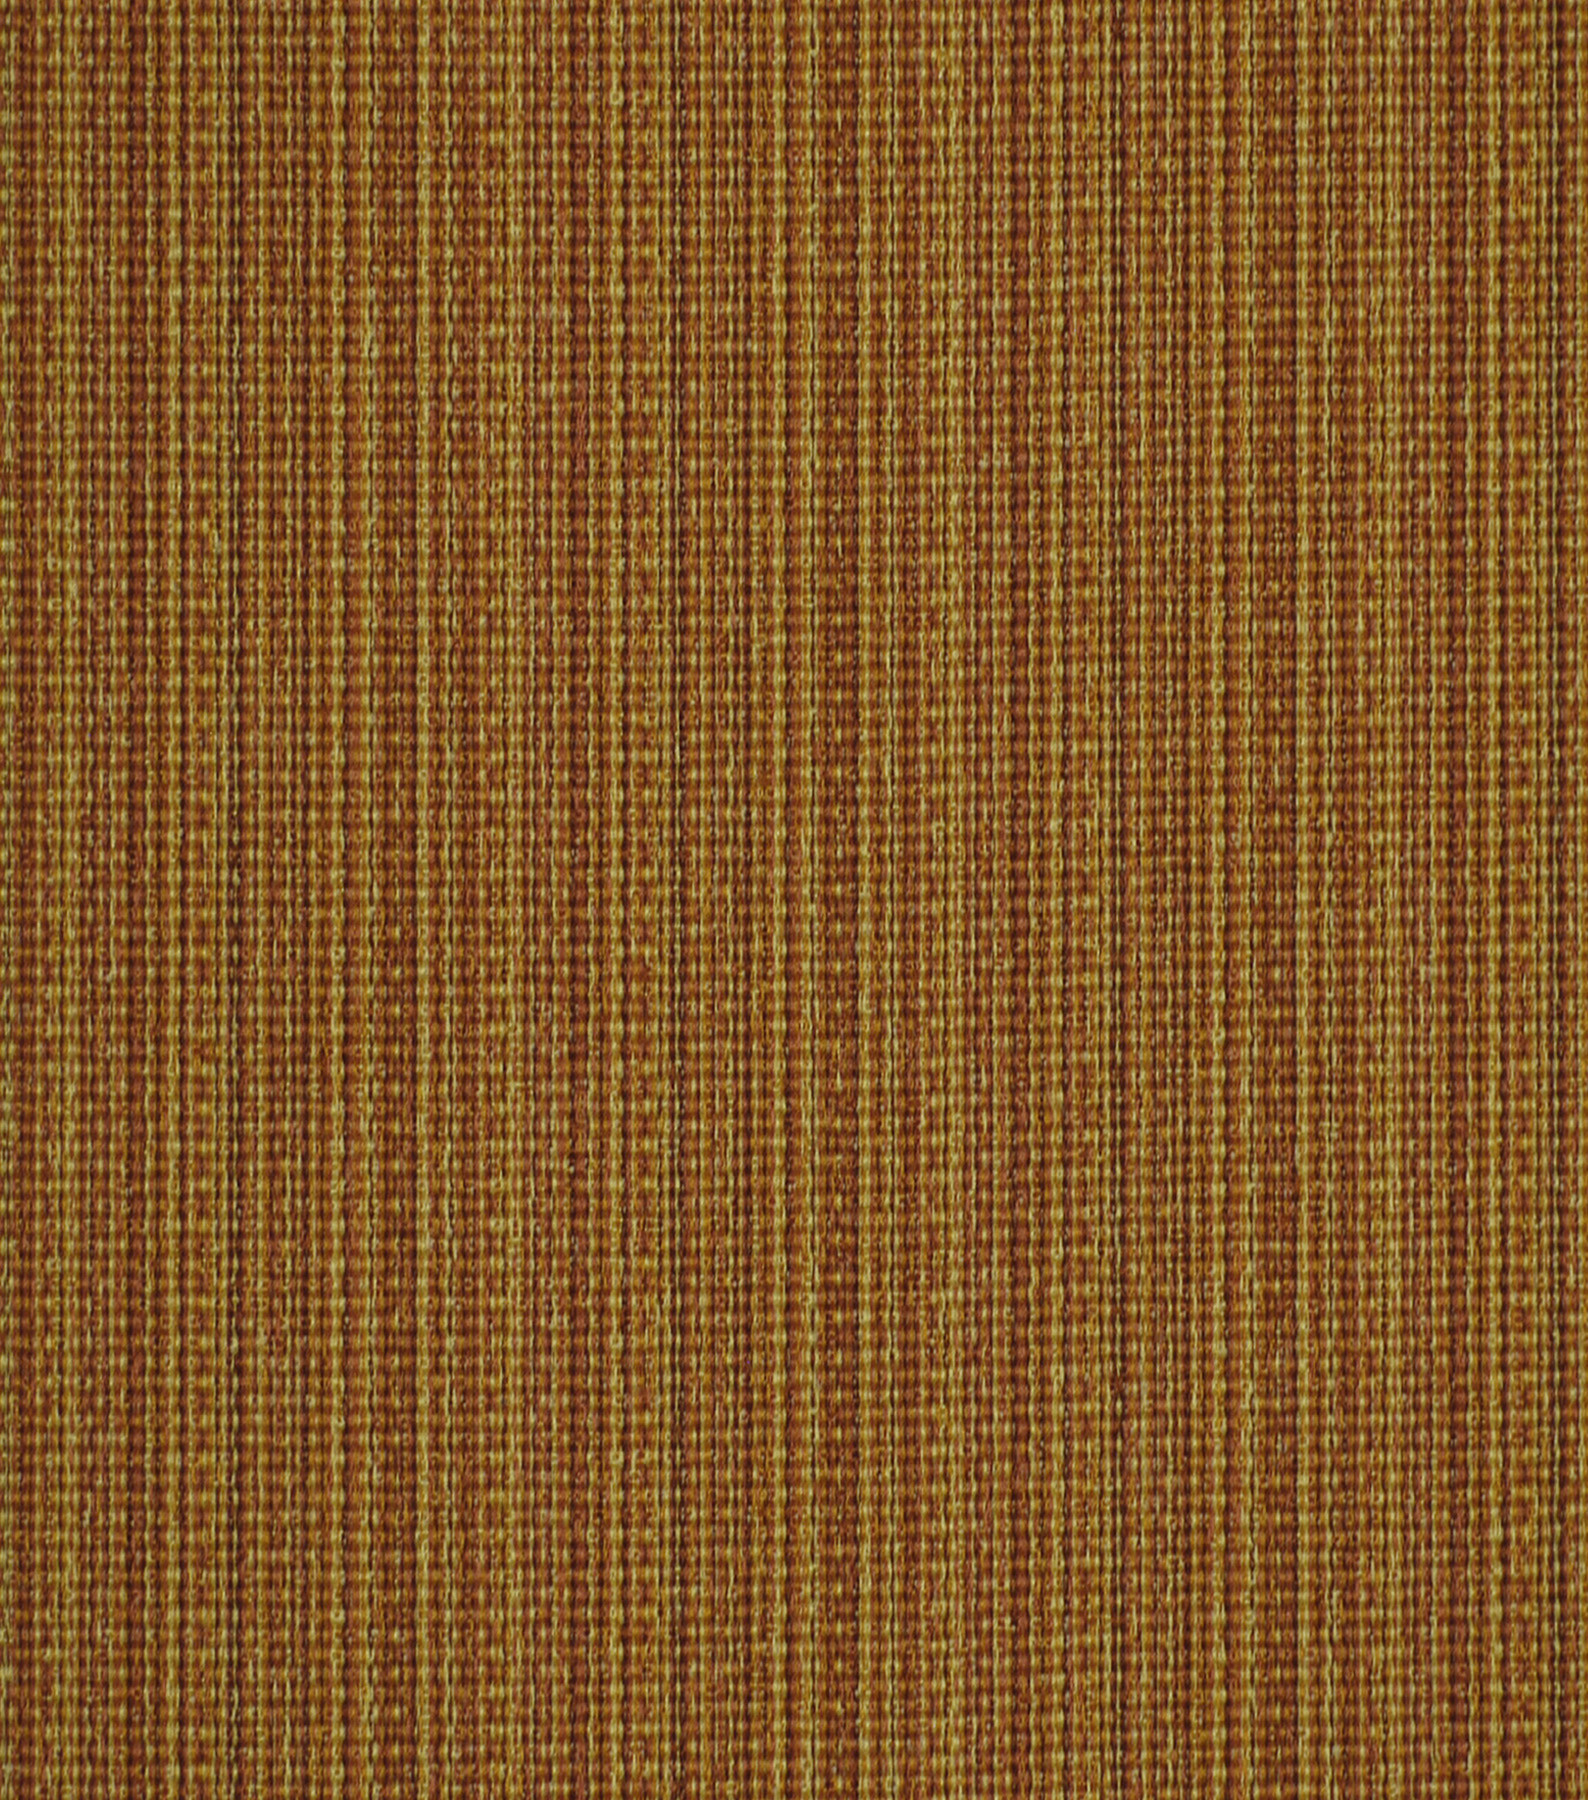 Home Decor 8\u0022x8\u0022 Fabric Swatch-Signature Series Run Along Sunburst